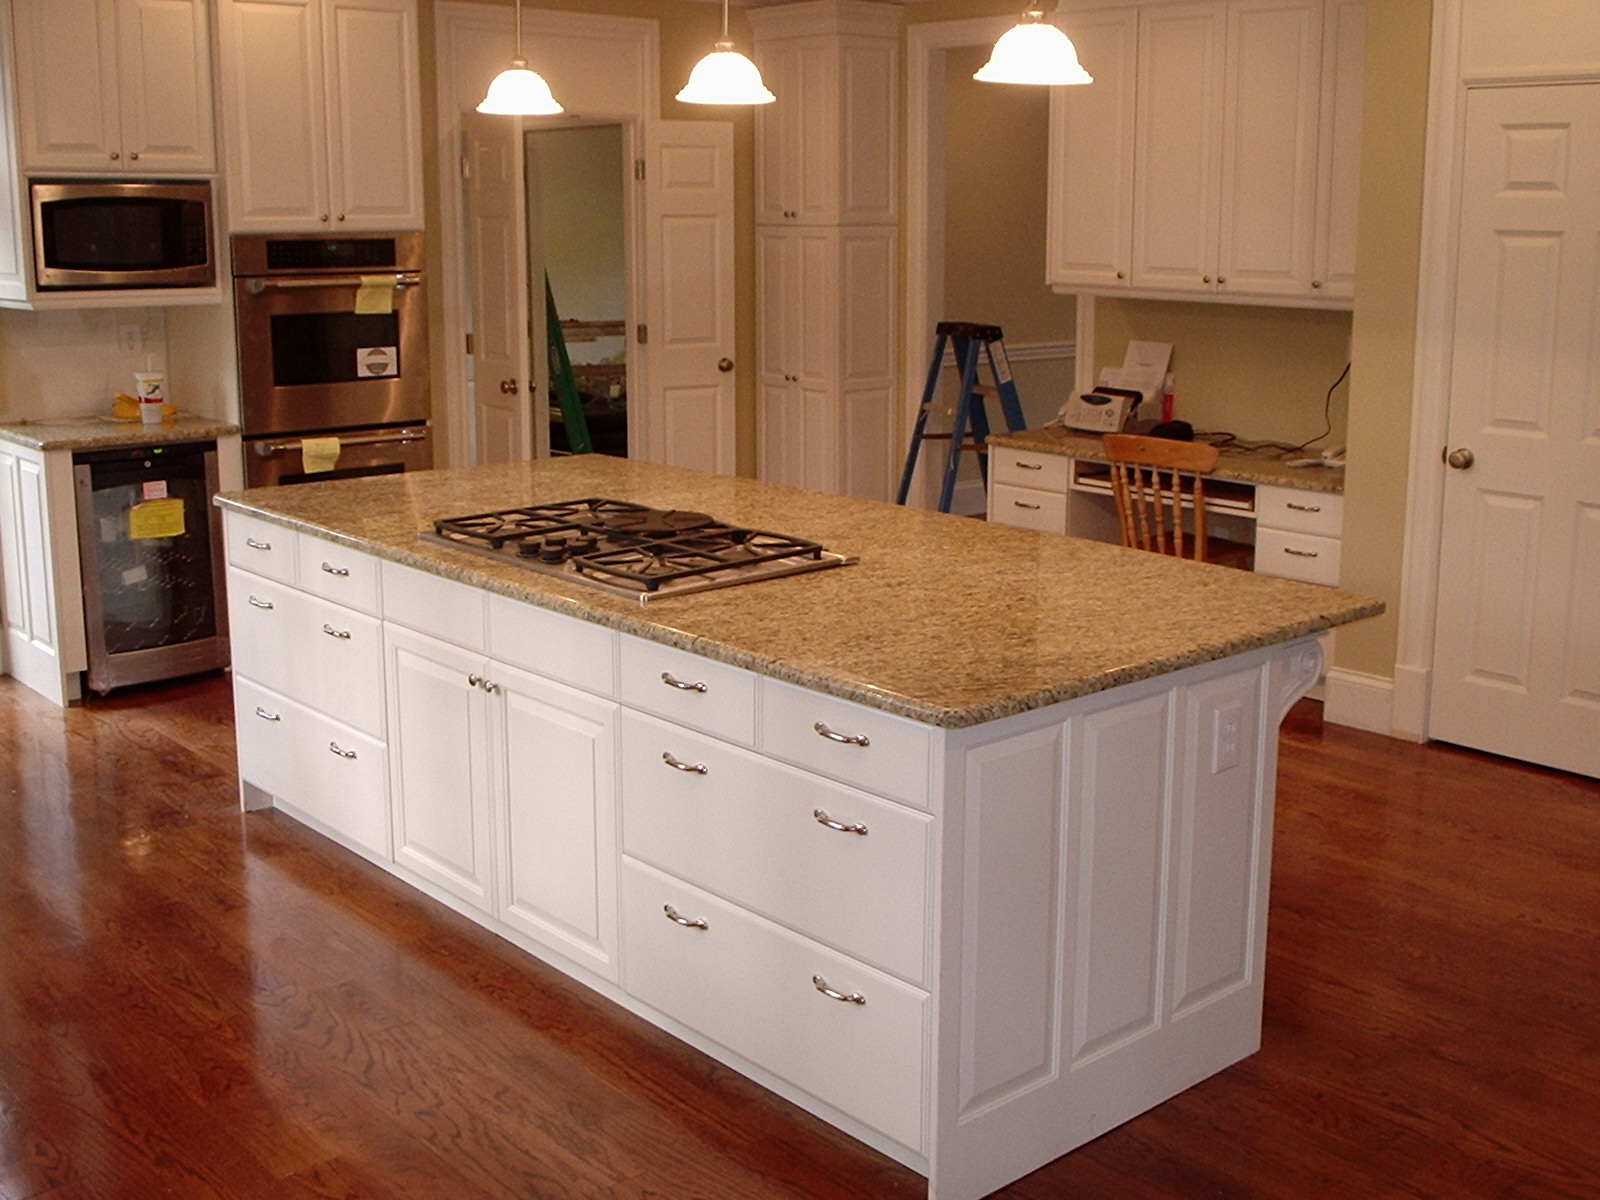 Kitchen cabinet plans dream house experience for Kitchen island cabinets